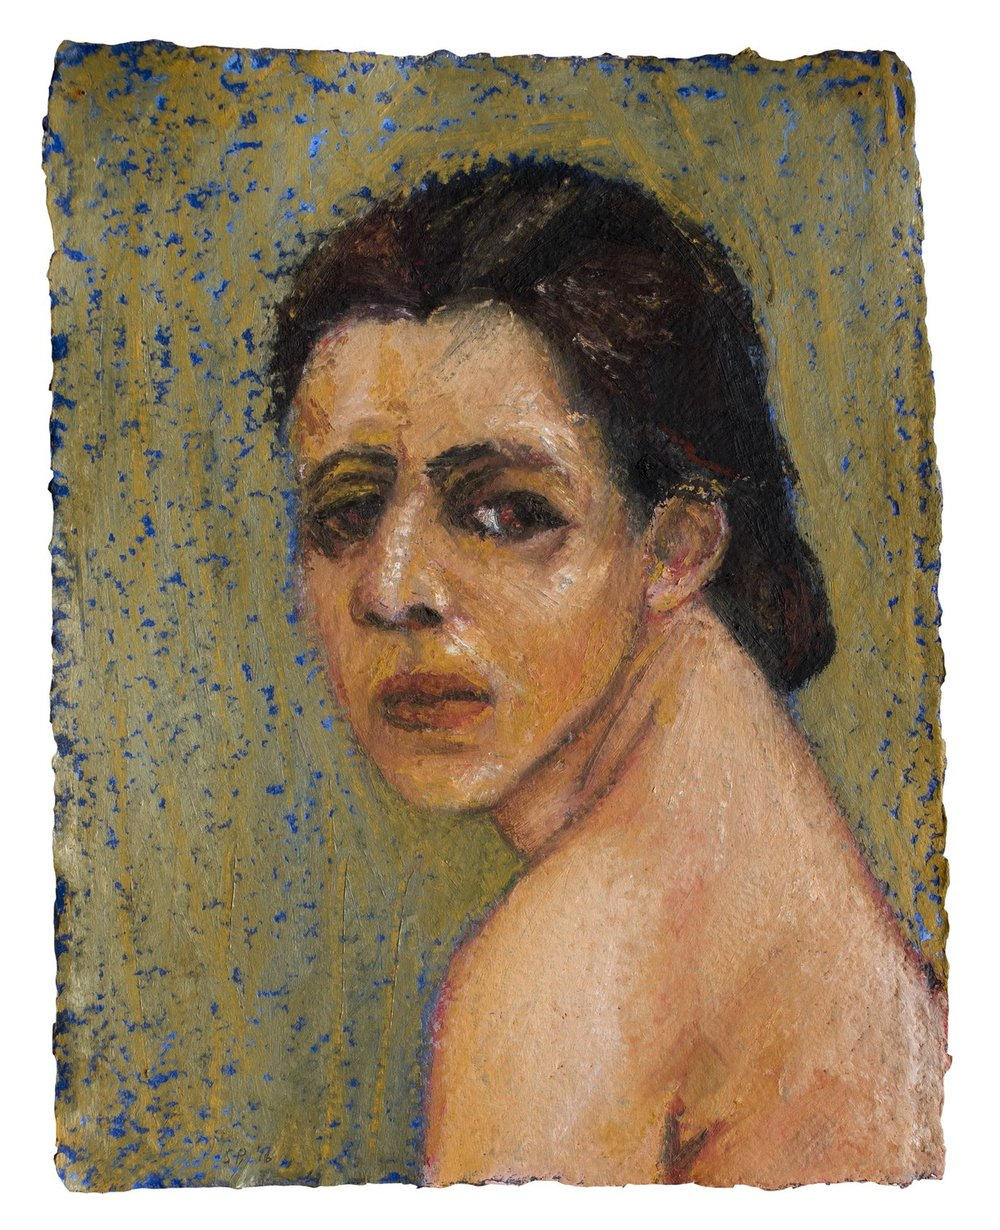 "Weary | Acrylic & oil stick on handmade paper | 16"" x 12"" 